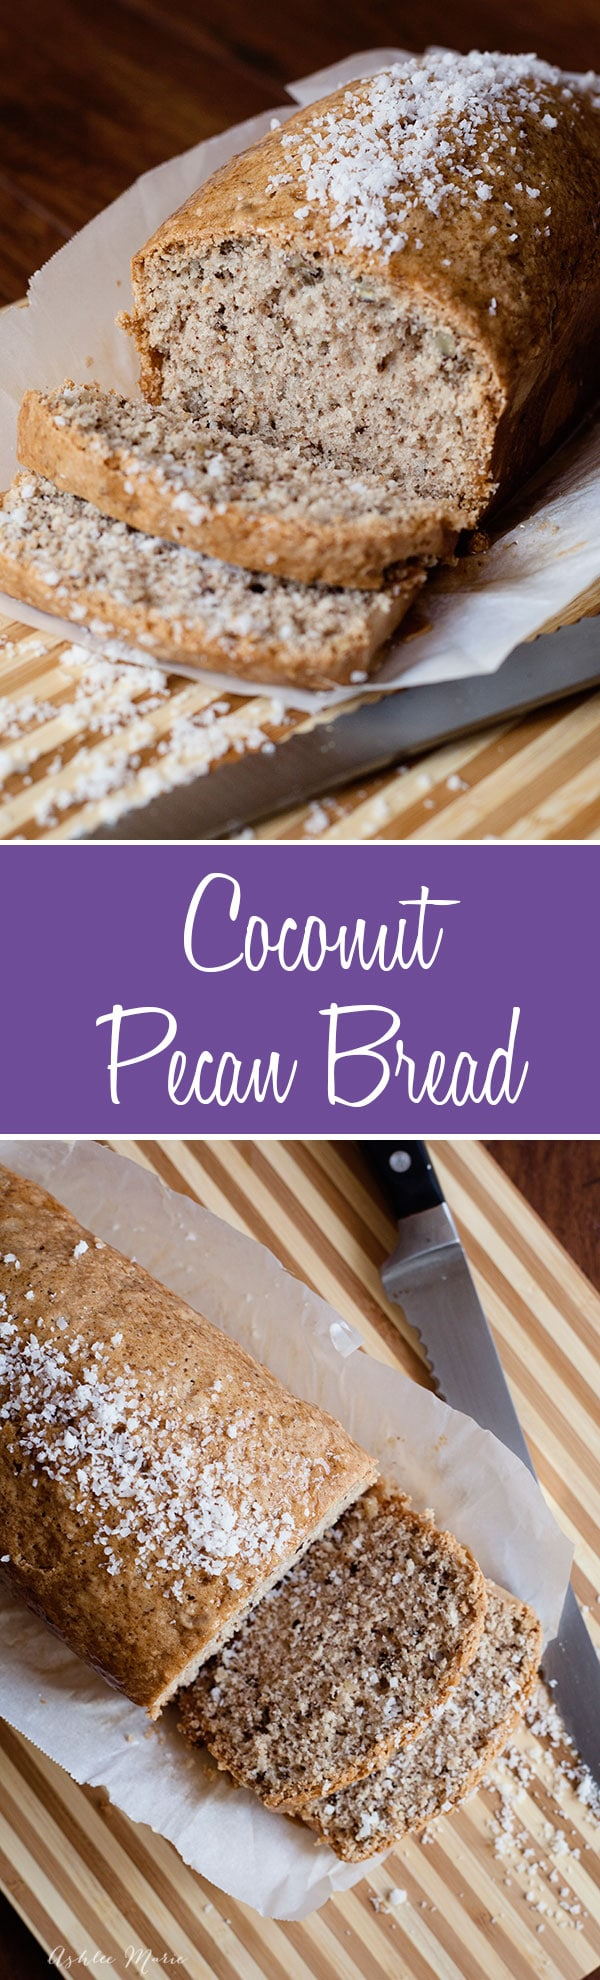 the most delicious coconut bread you will ever try.  Filled with a wonderful coconut flavor and pecan it is great warm or toasted, I top it with cream cheese